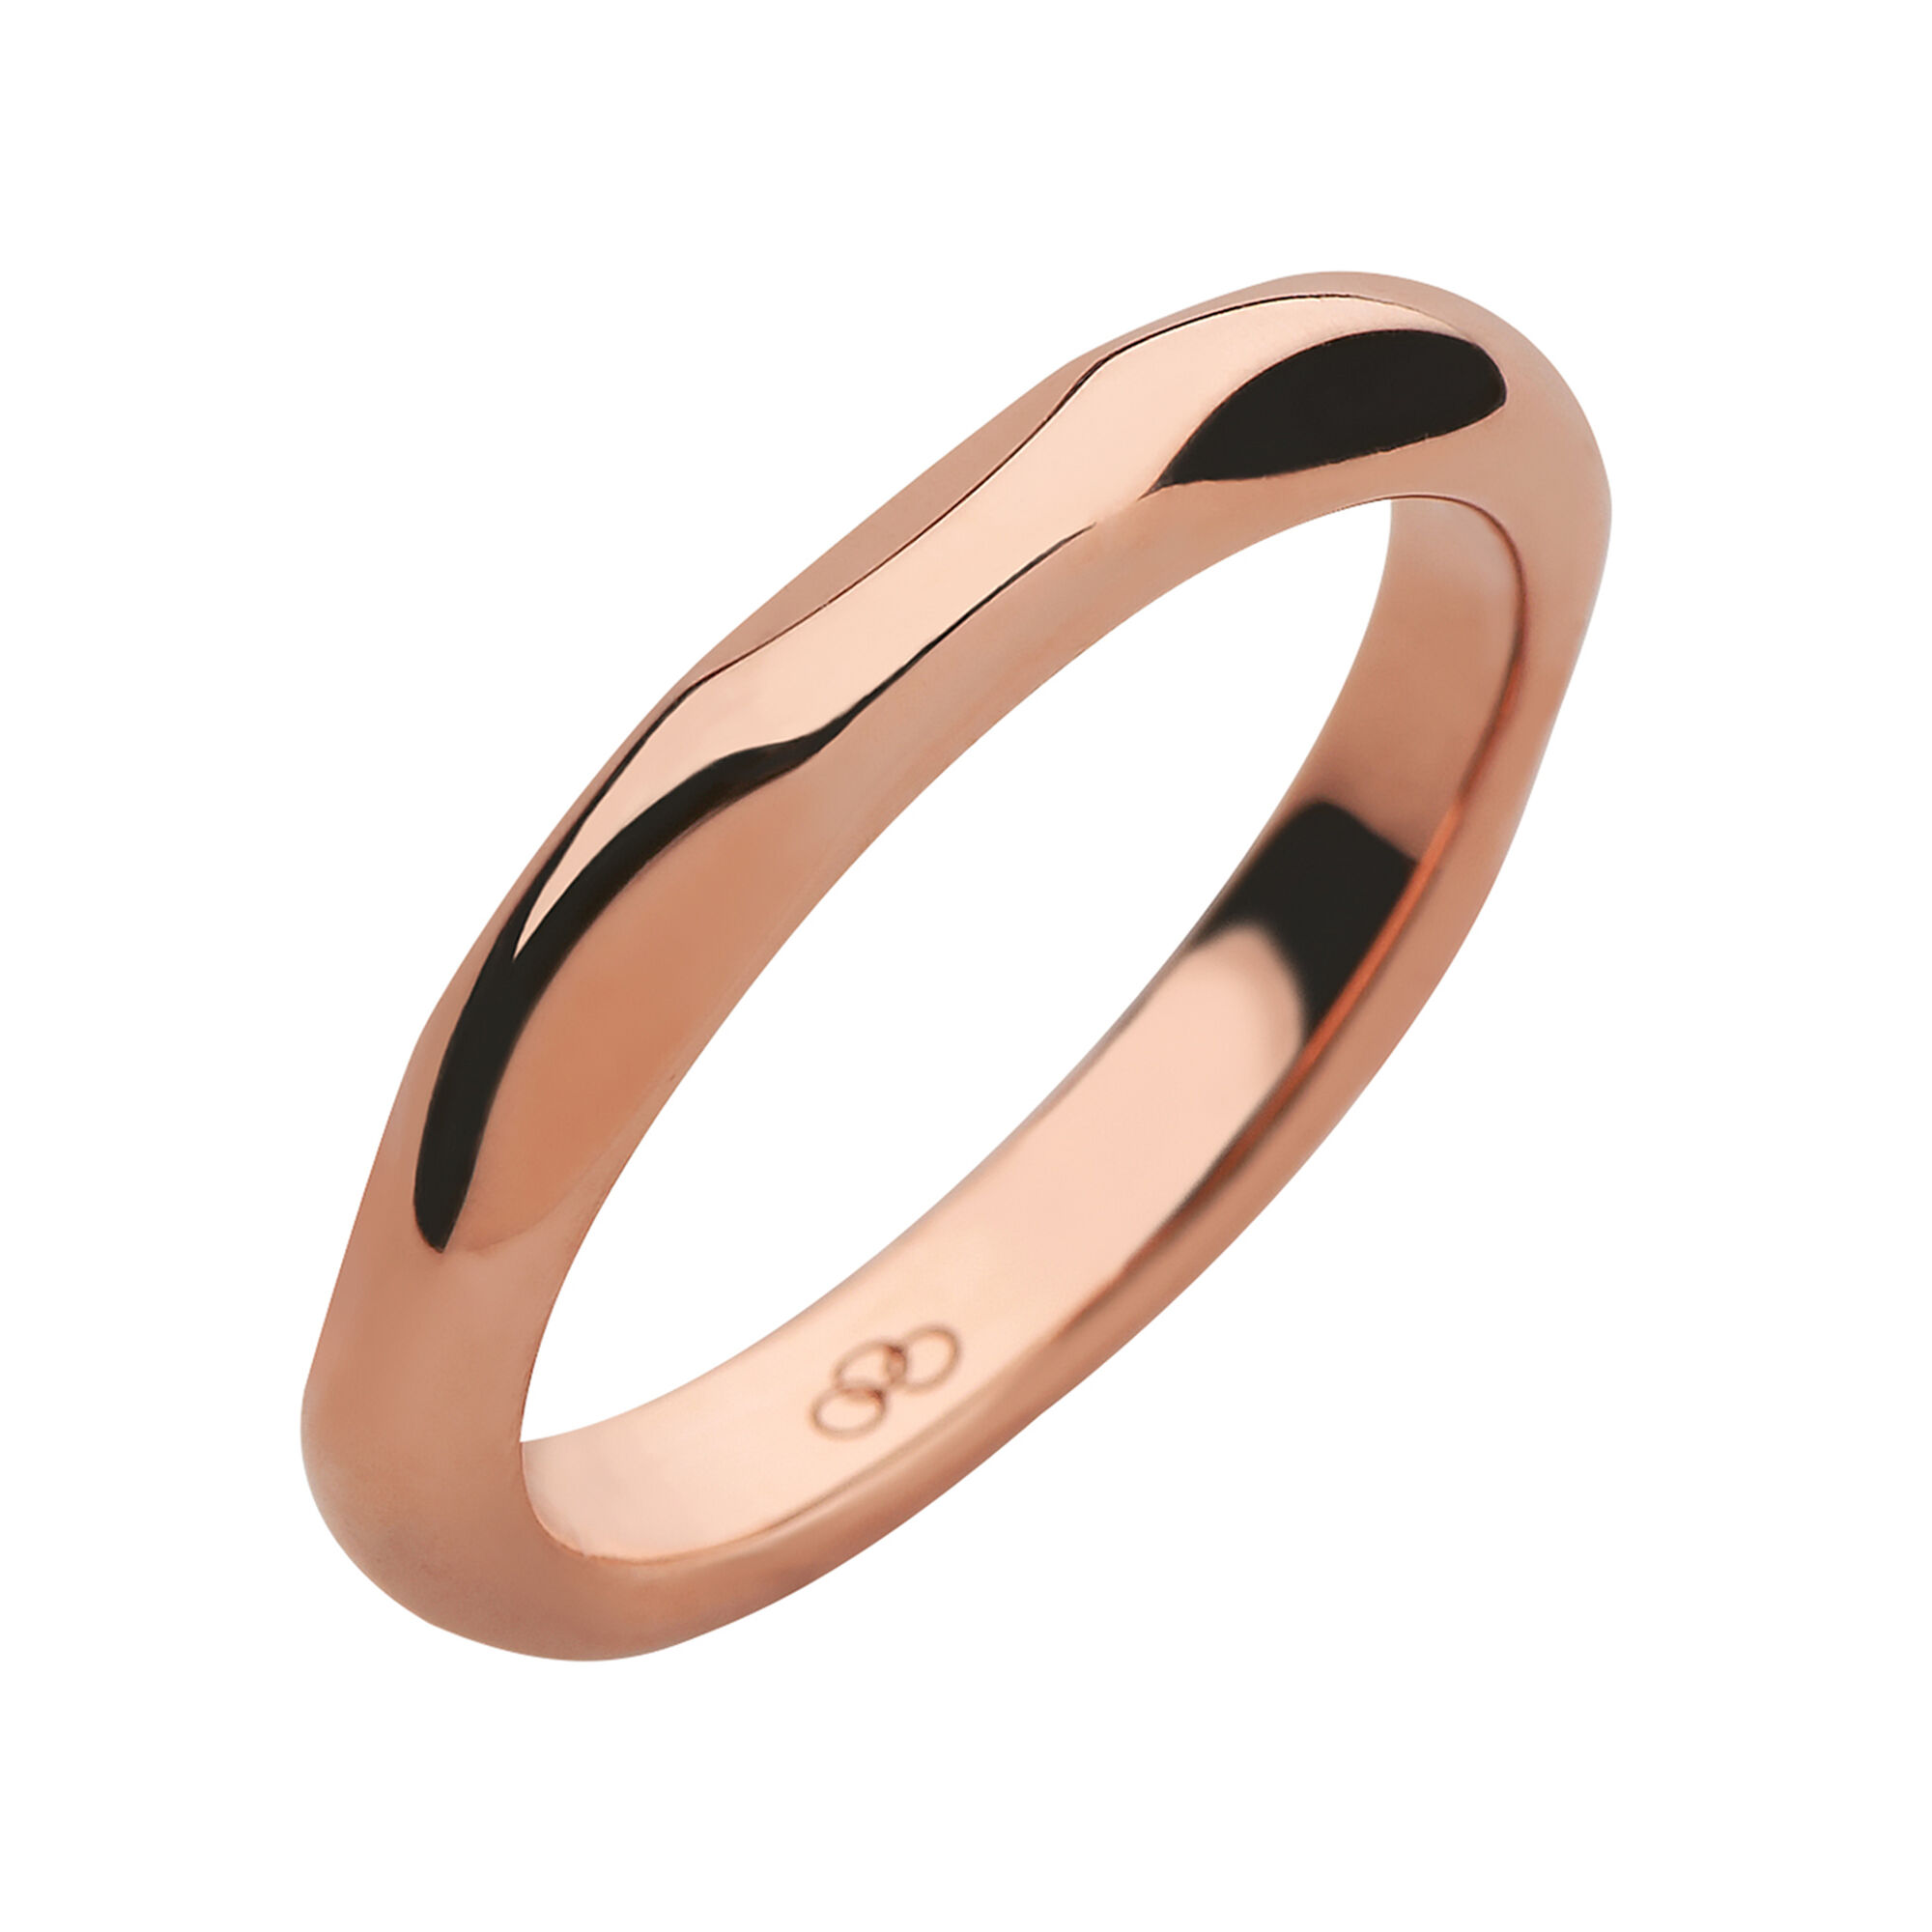 buy him classic band bands rings wedding candere gold mens men for price david com best